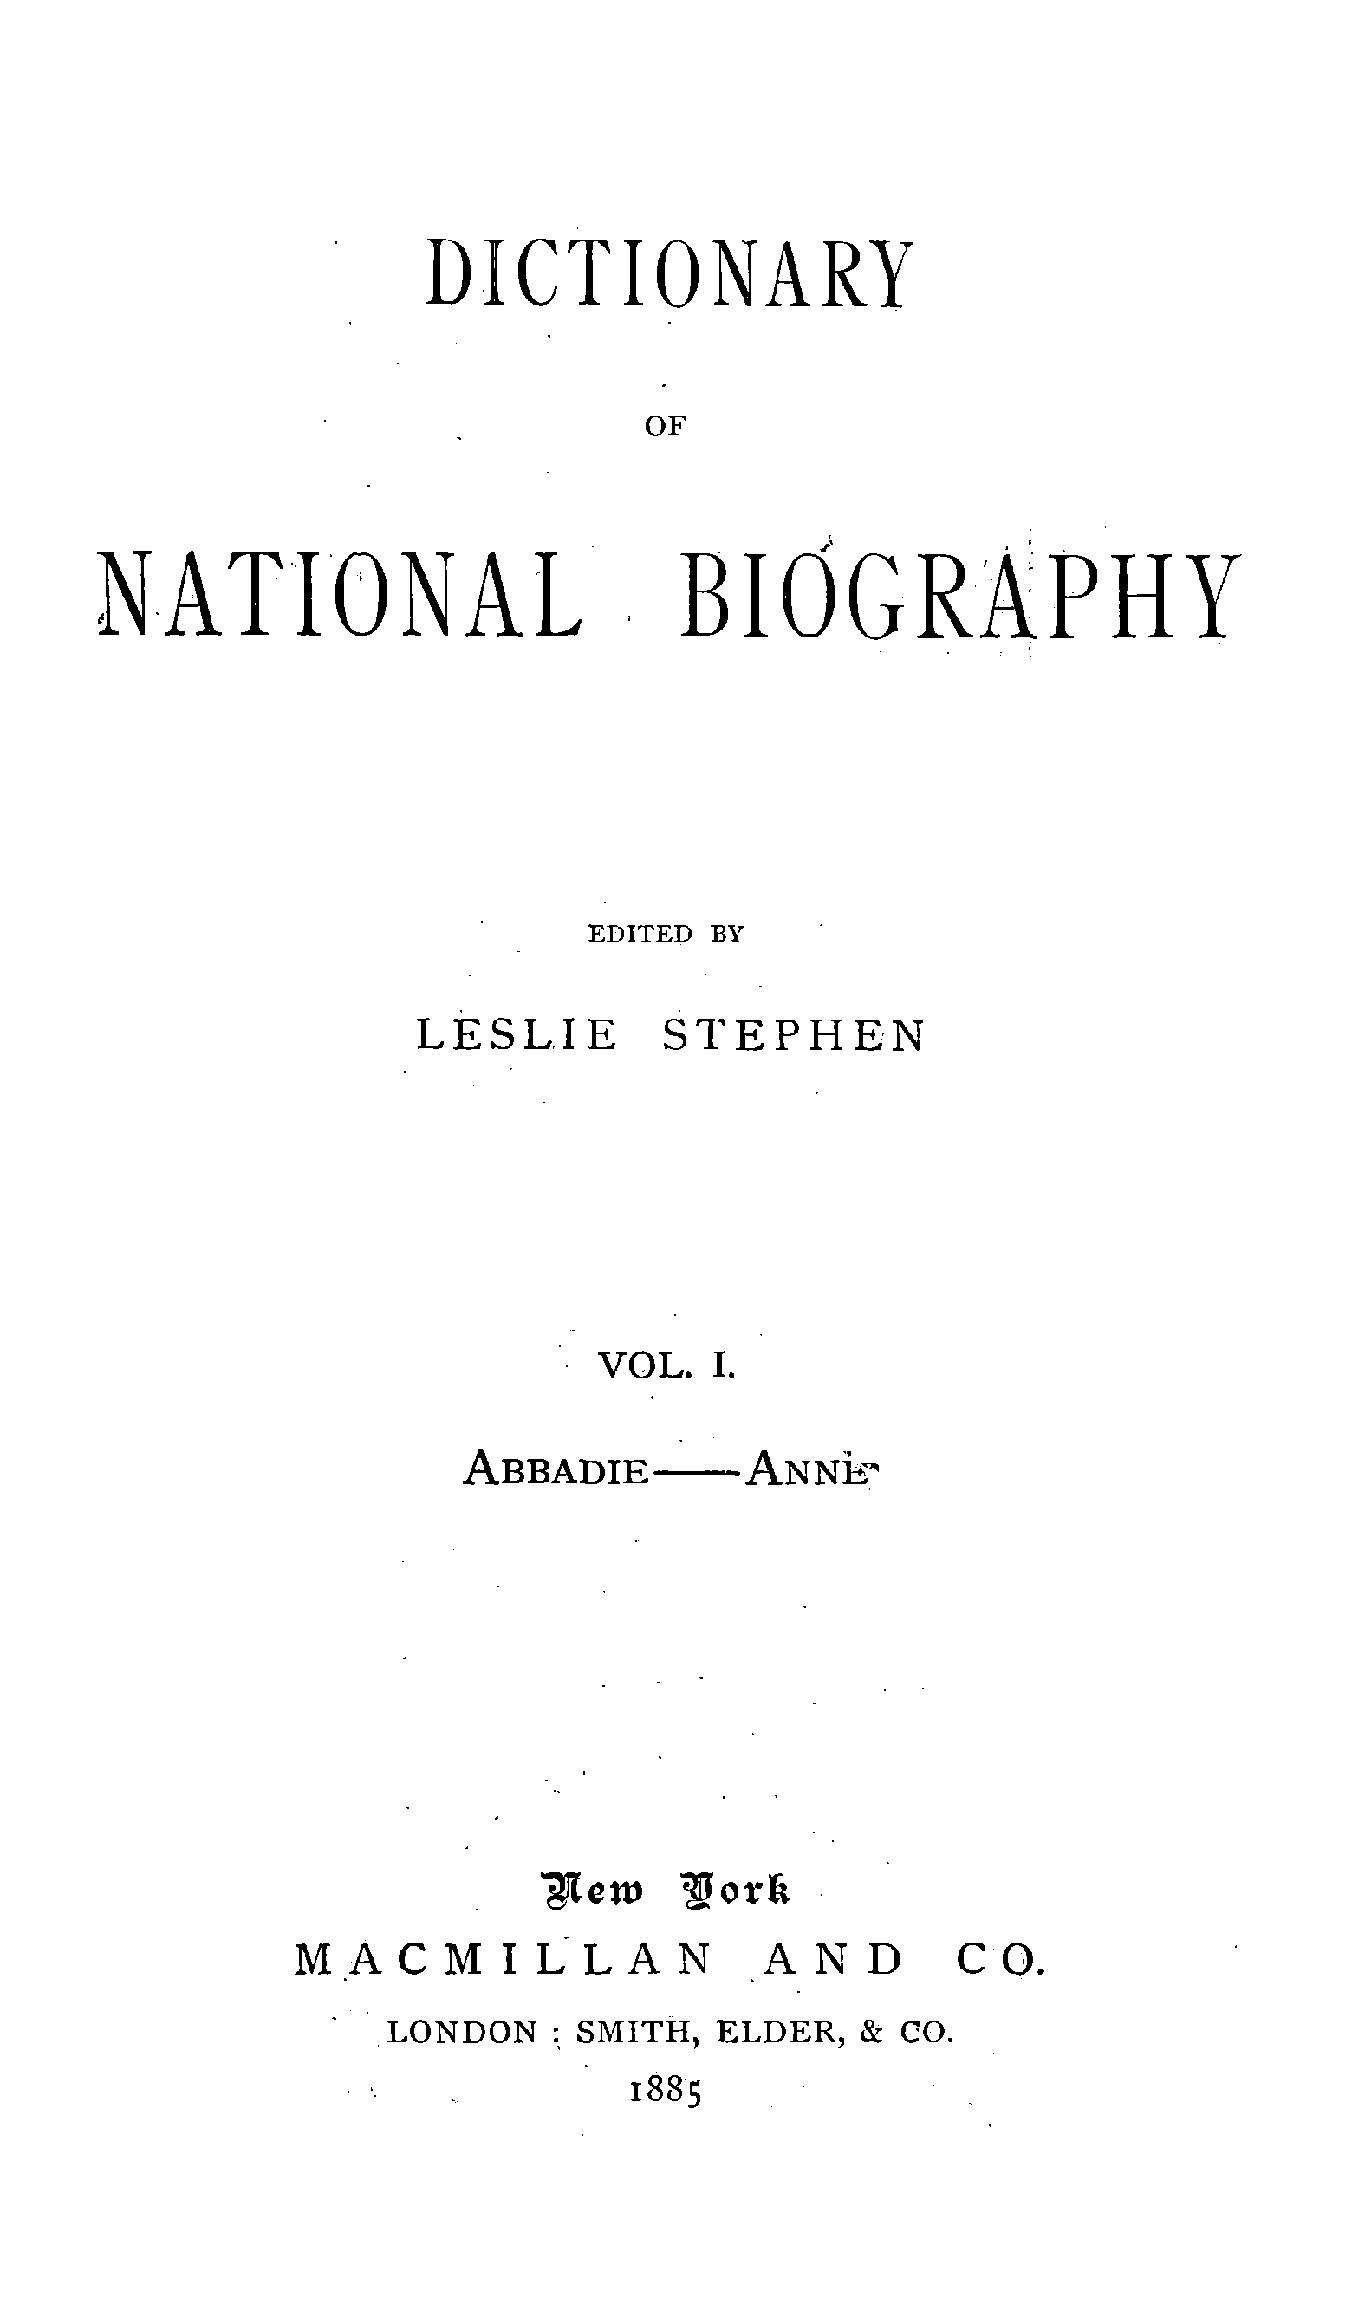 Peachy Dictionary Of National Biography Vol I Abbadie Anne Dailytribune Chair Design For Home Dailytribuneorg